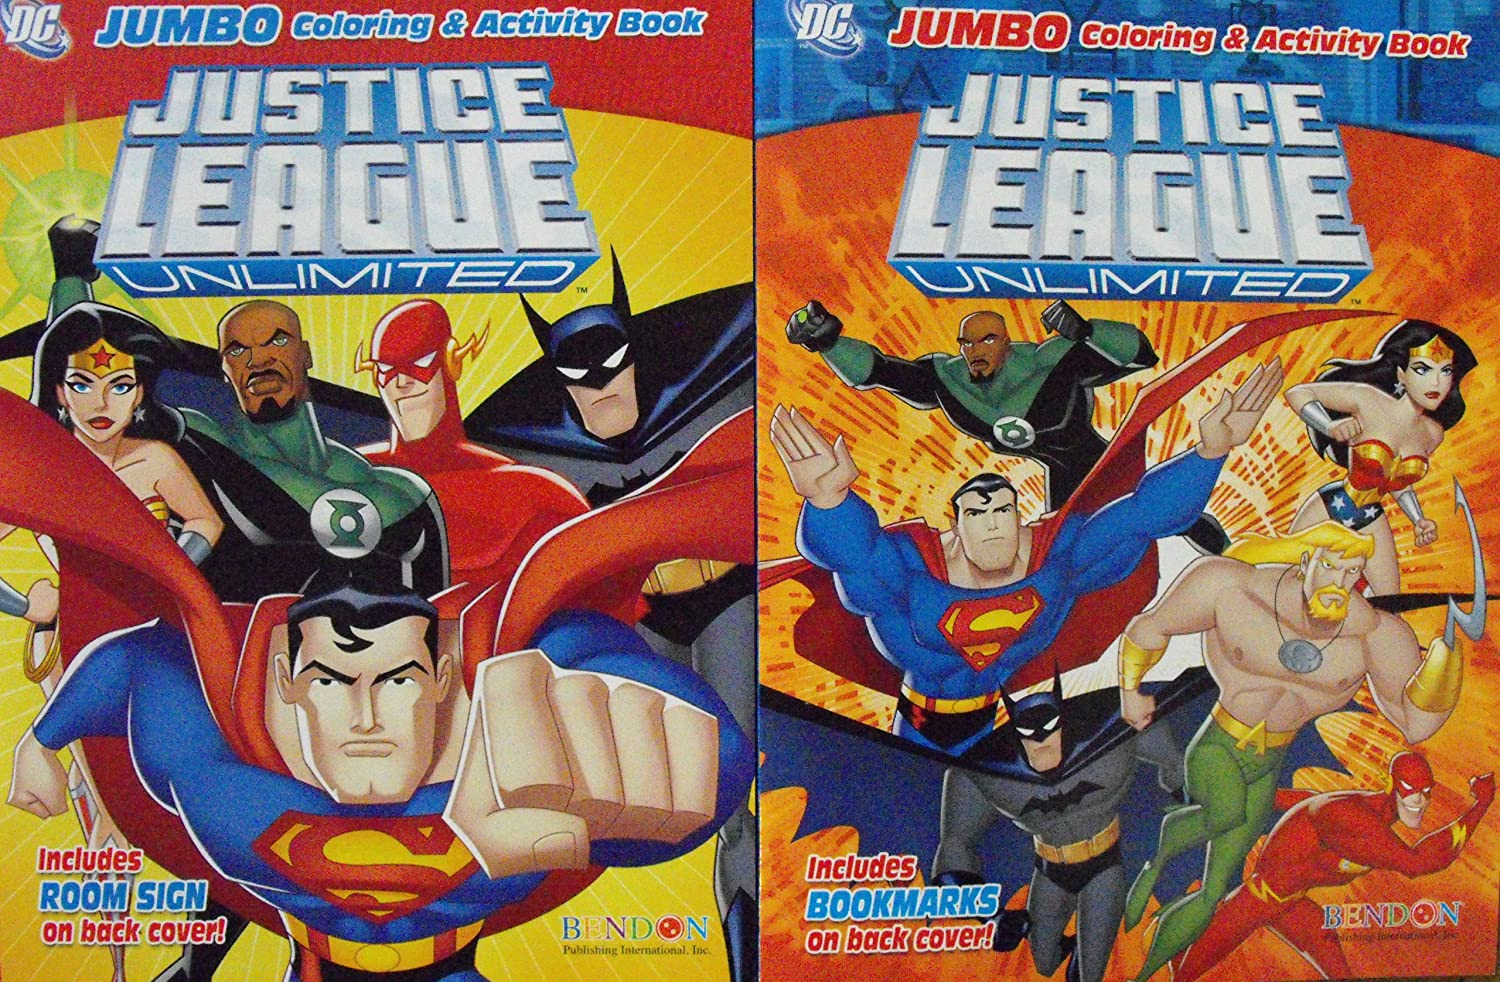 96 Pages Bendon Publishing International Justice League Unlimited Coloring Book